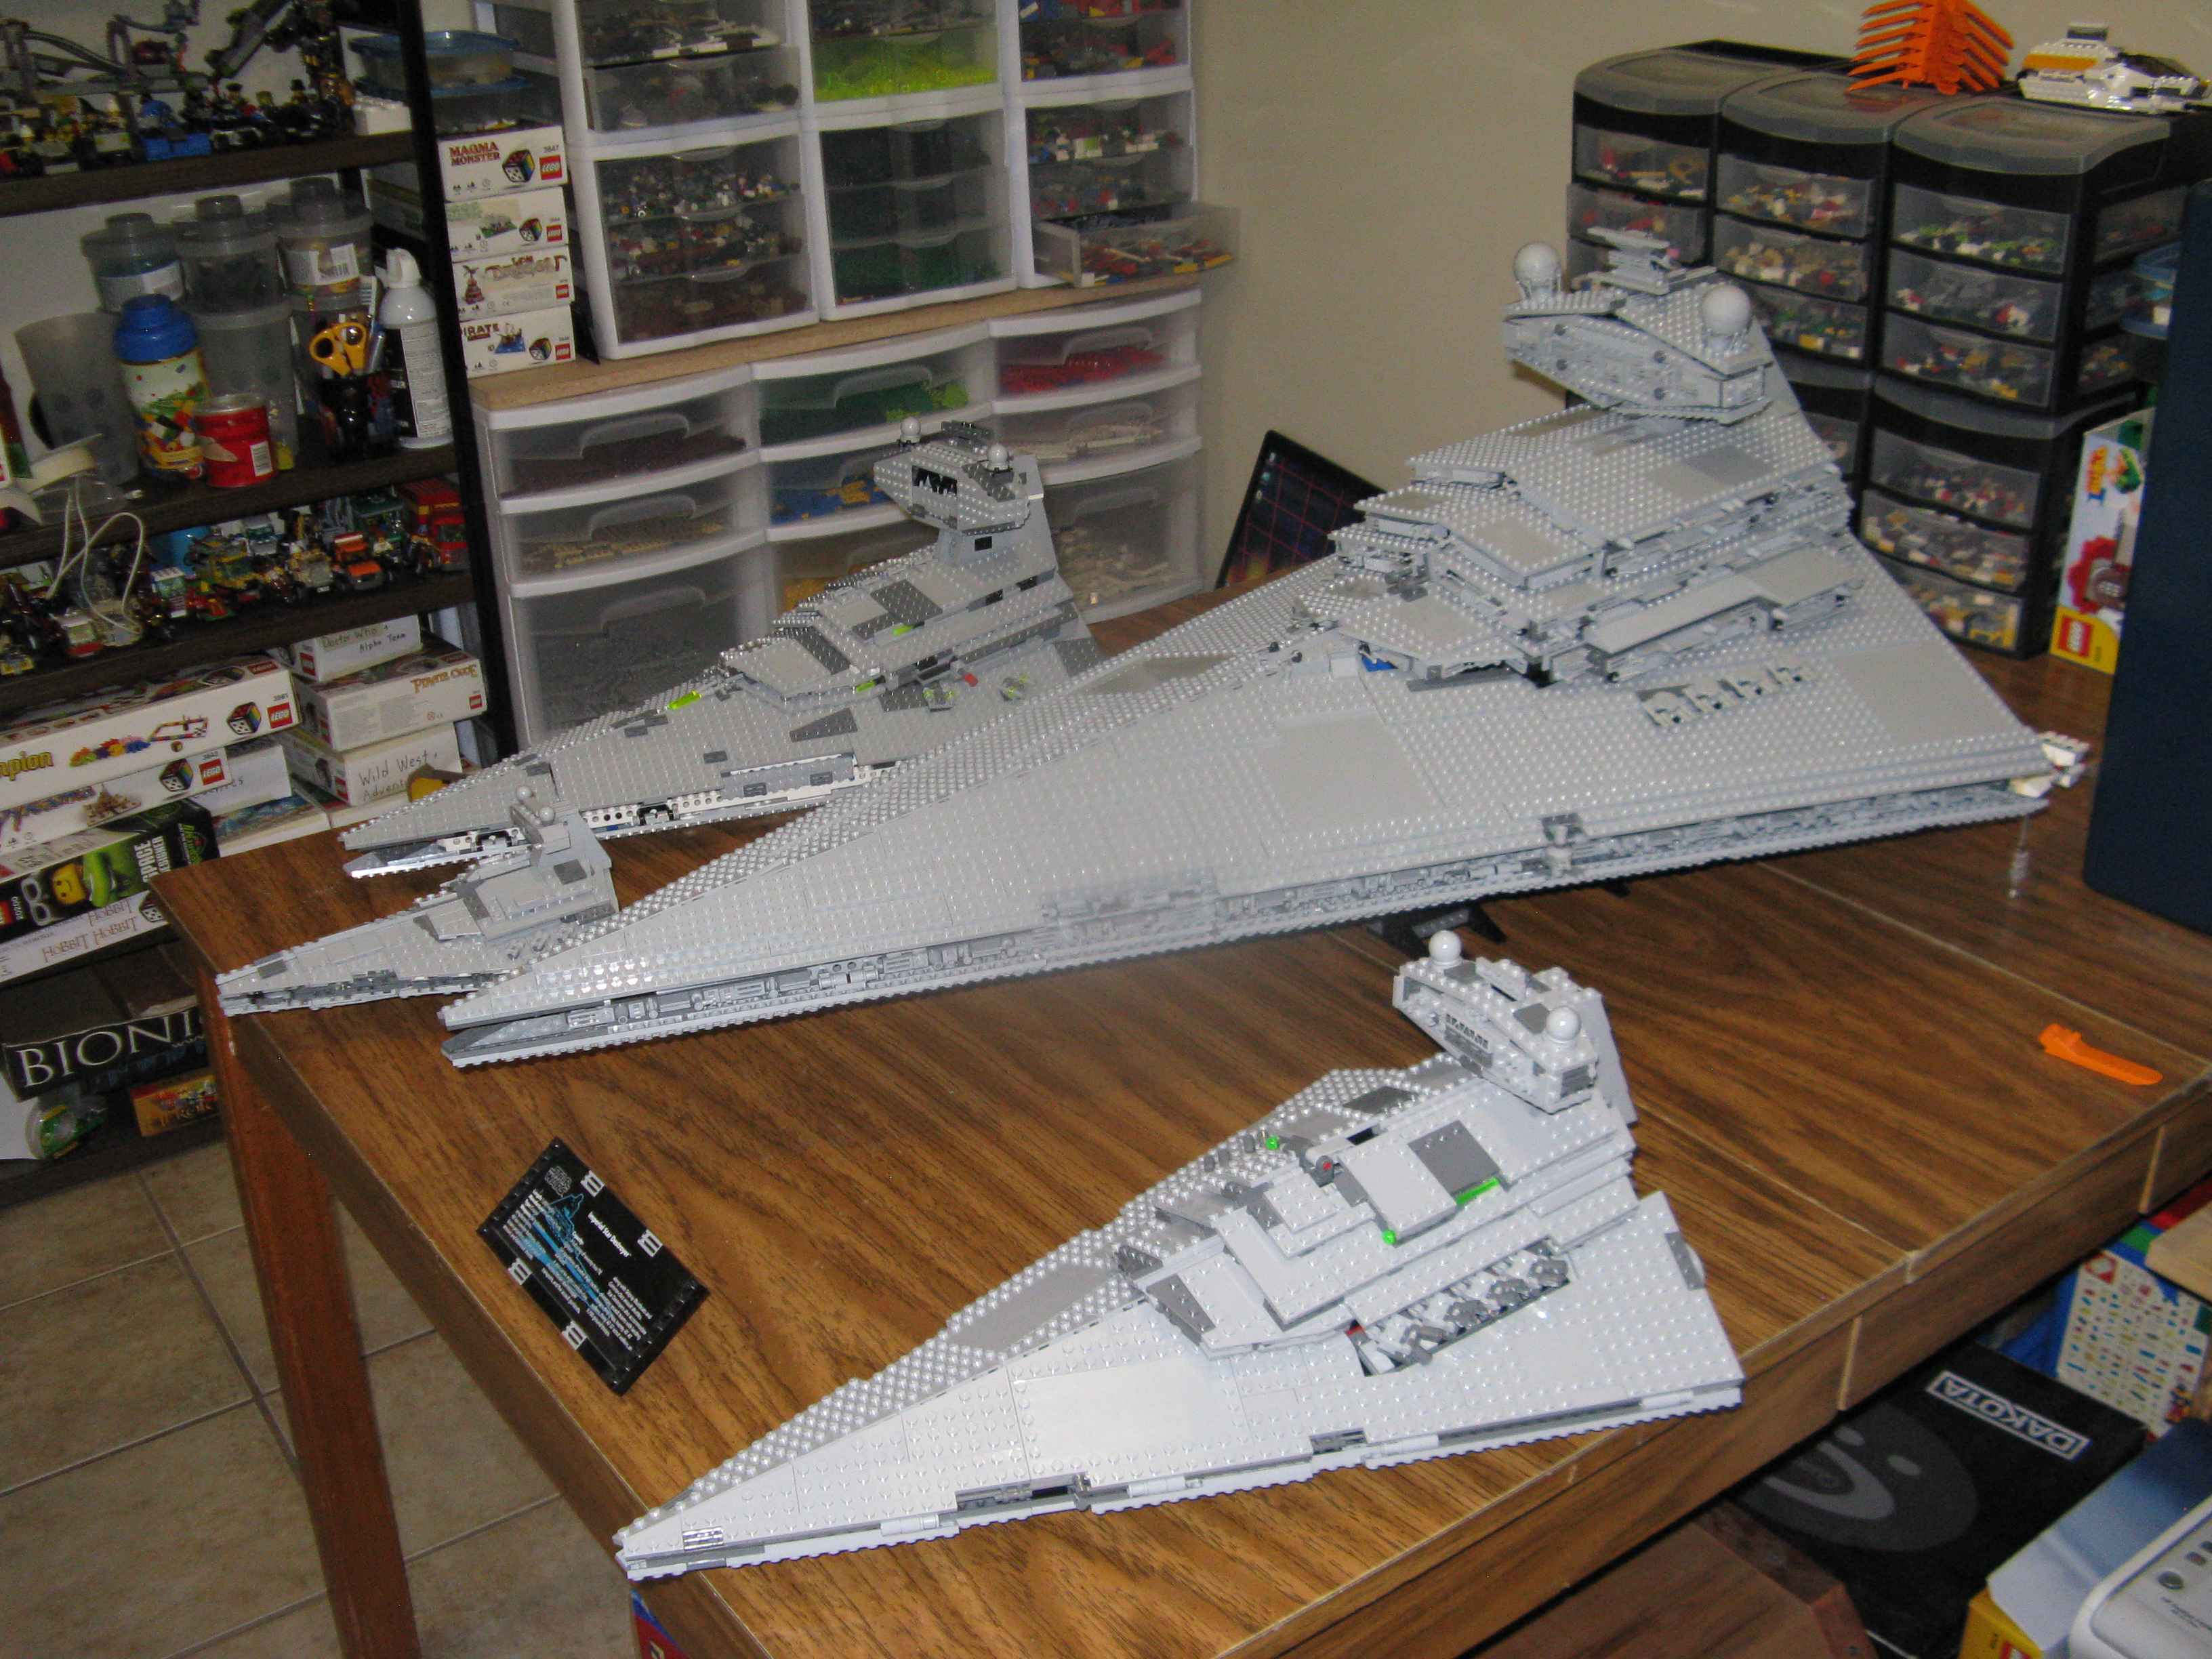 ... Imperial Star Destroyers 10030 And 75055? : Lego - 3264x2448 - jpeg